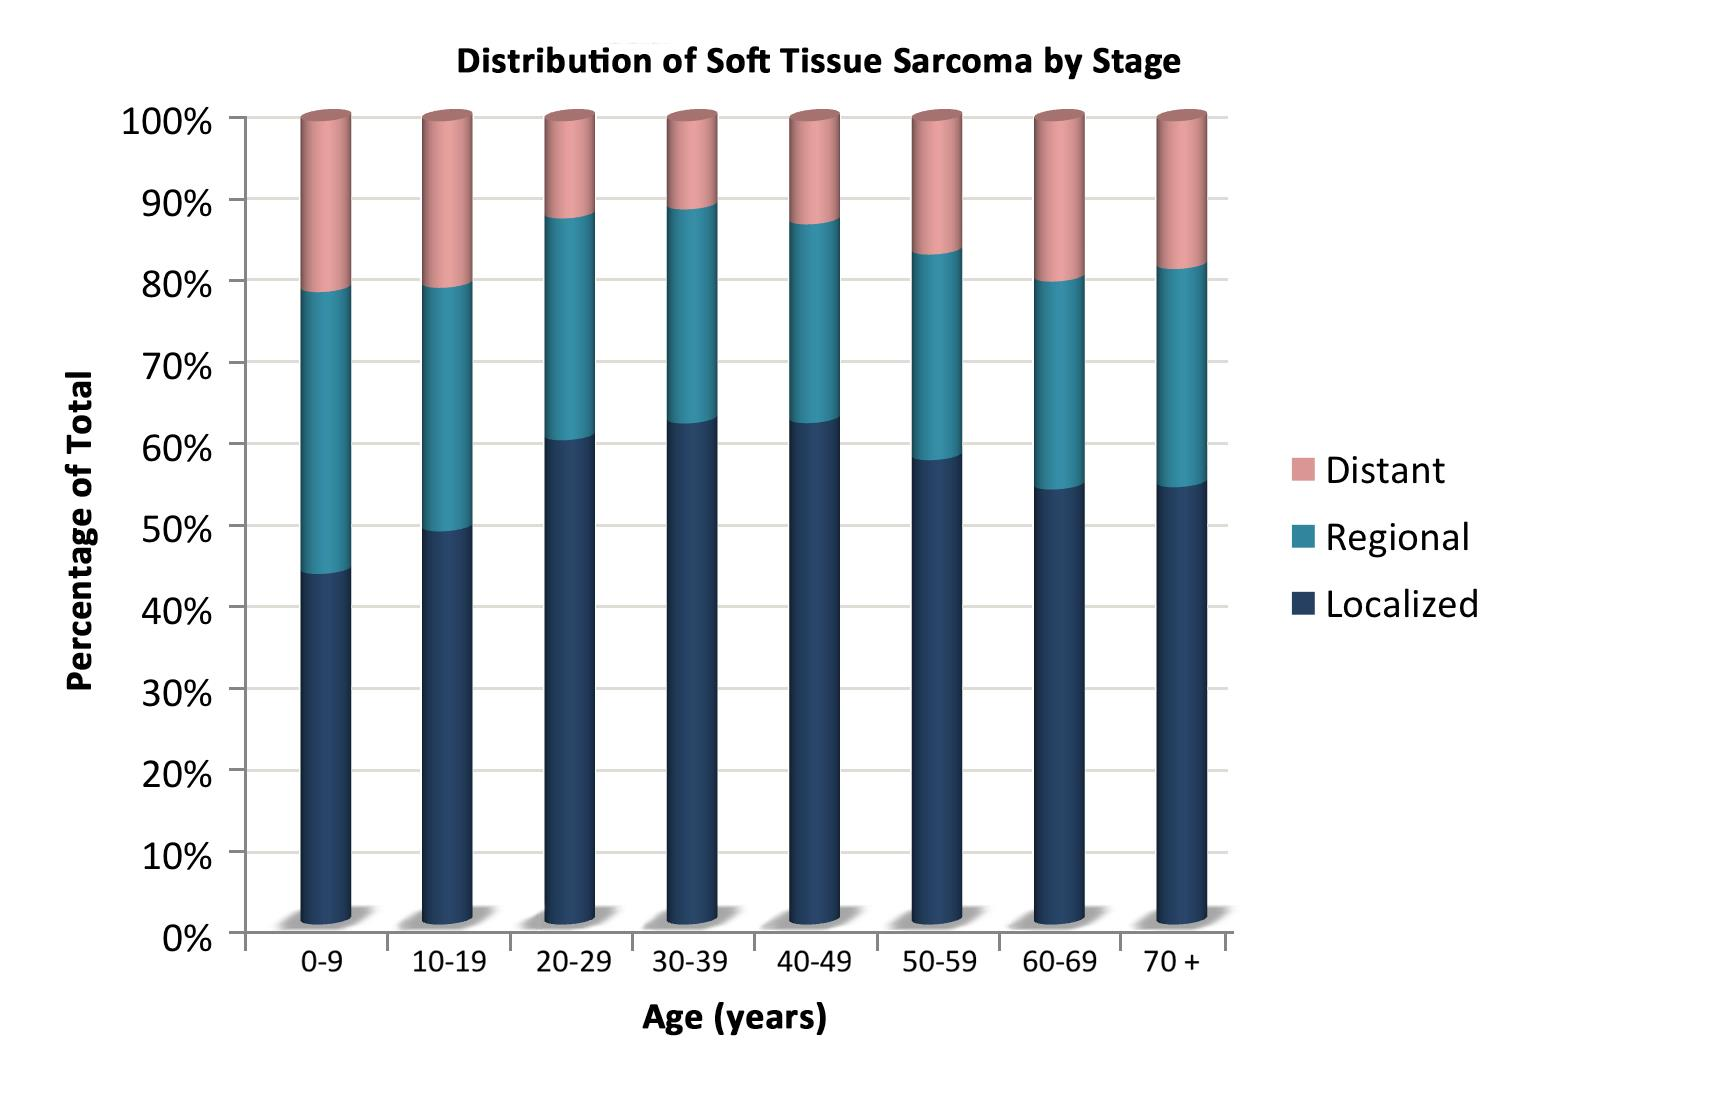 Chart showing the distribution of nonrhabdomyosarcomatous soft tissue sarcomas by age according to stage.